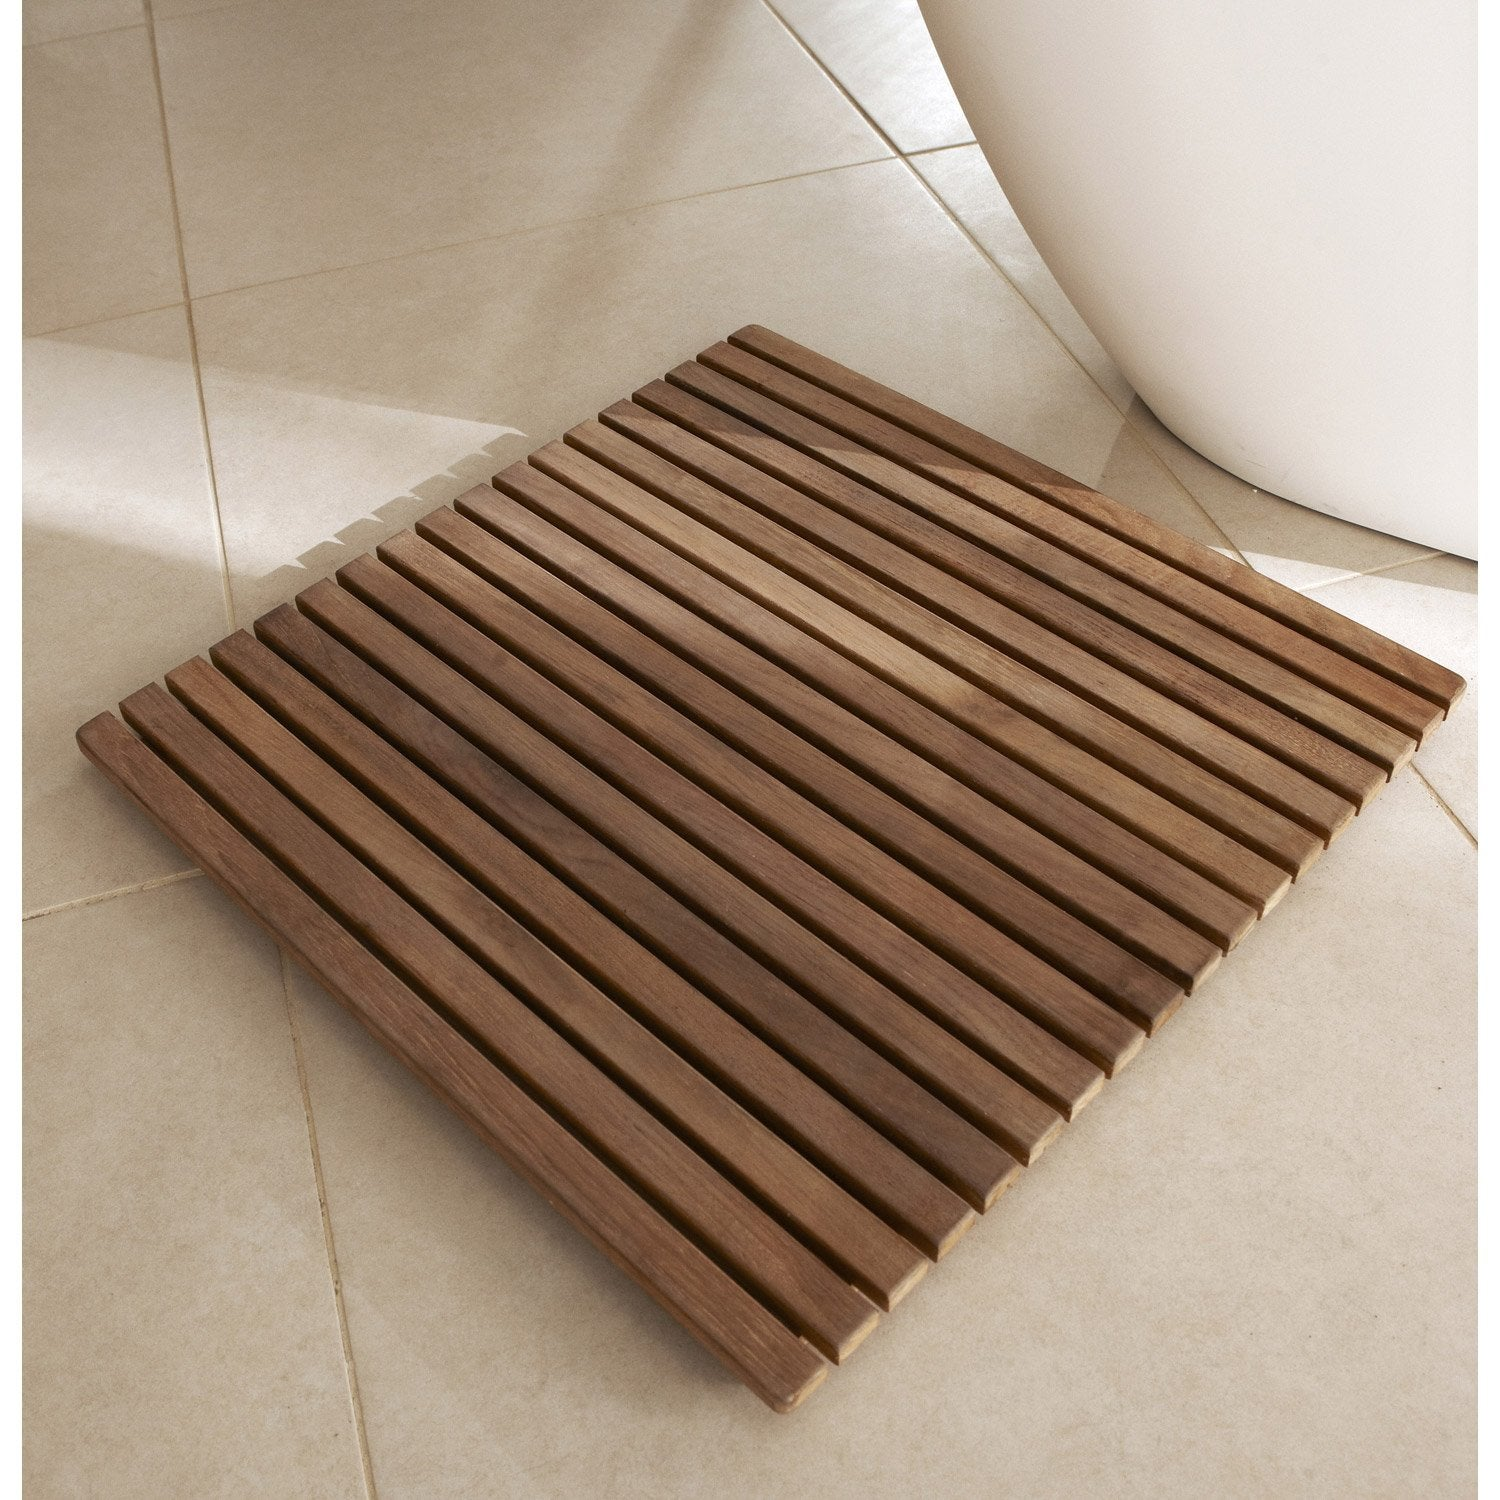 Caillebotis poser naturel teck leroy merlin for Carrelage 80x80 leroy merlin